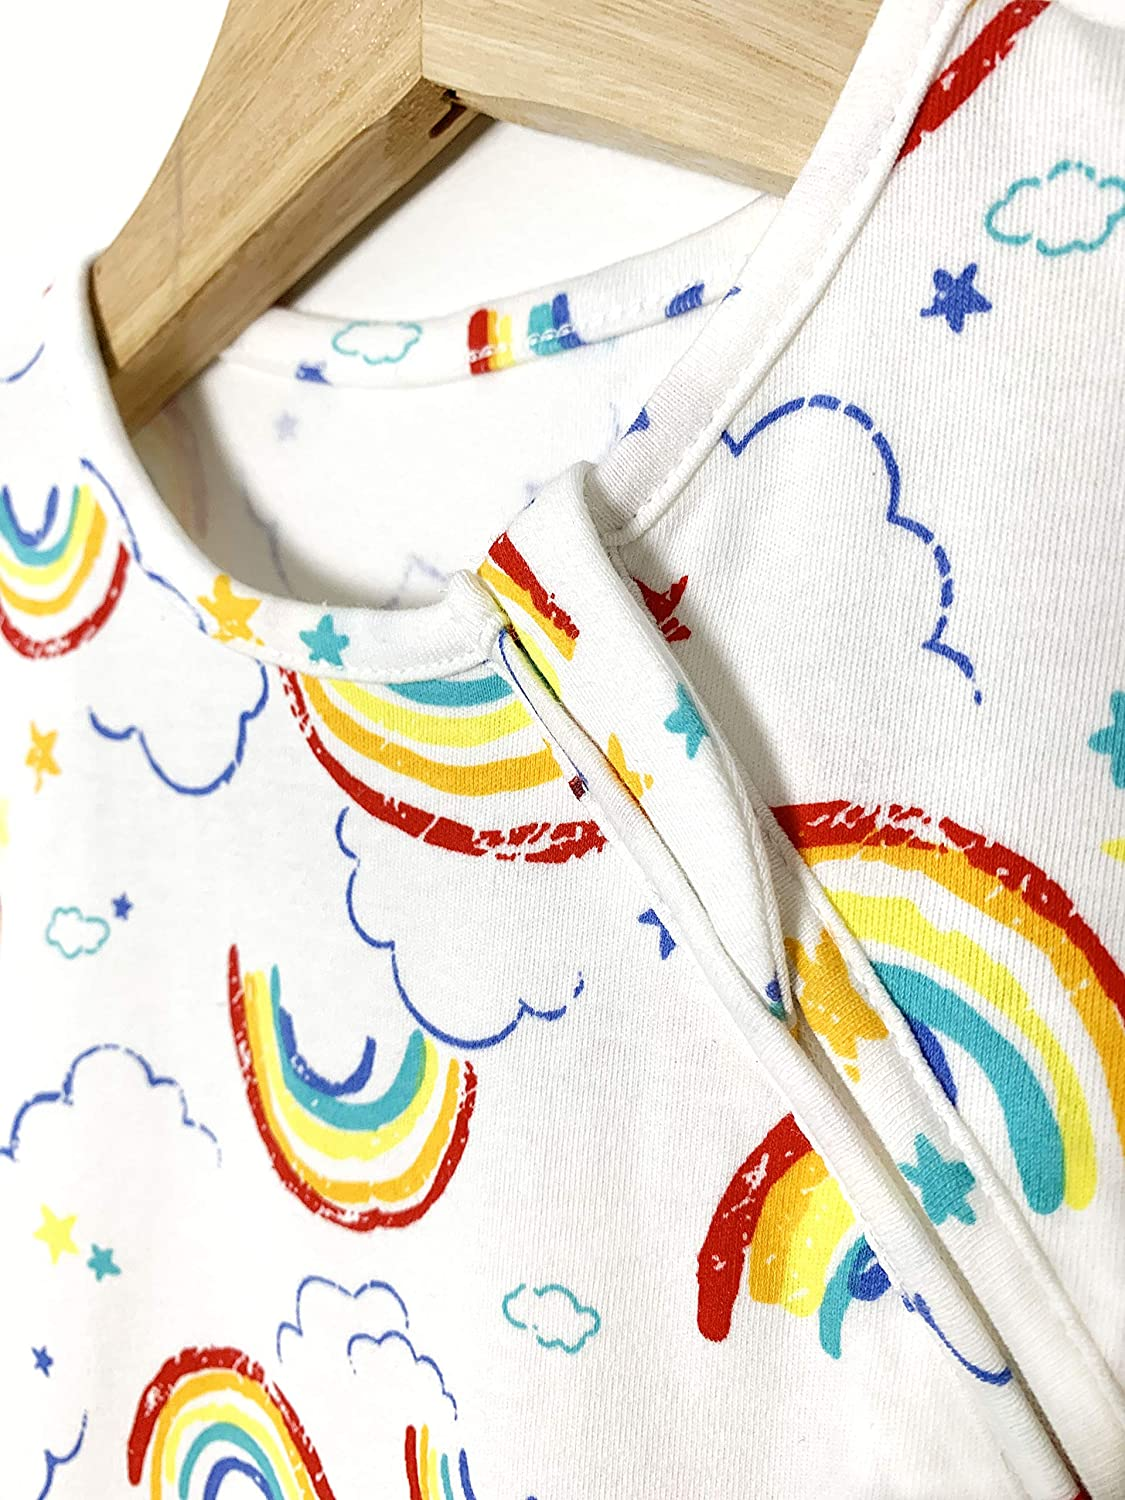 0.5 TOG Spring//Summer Baby Sleep Sack MiniSteps Sleep Sack Baby Swaddle Sack Baby Sleepwear Wearable Blanket Two Way Zipper Breathable Sleeping Cloth 100/% Cotton Rainbows, 6-18 months Super Soft